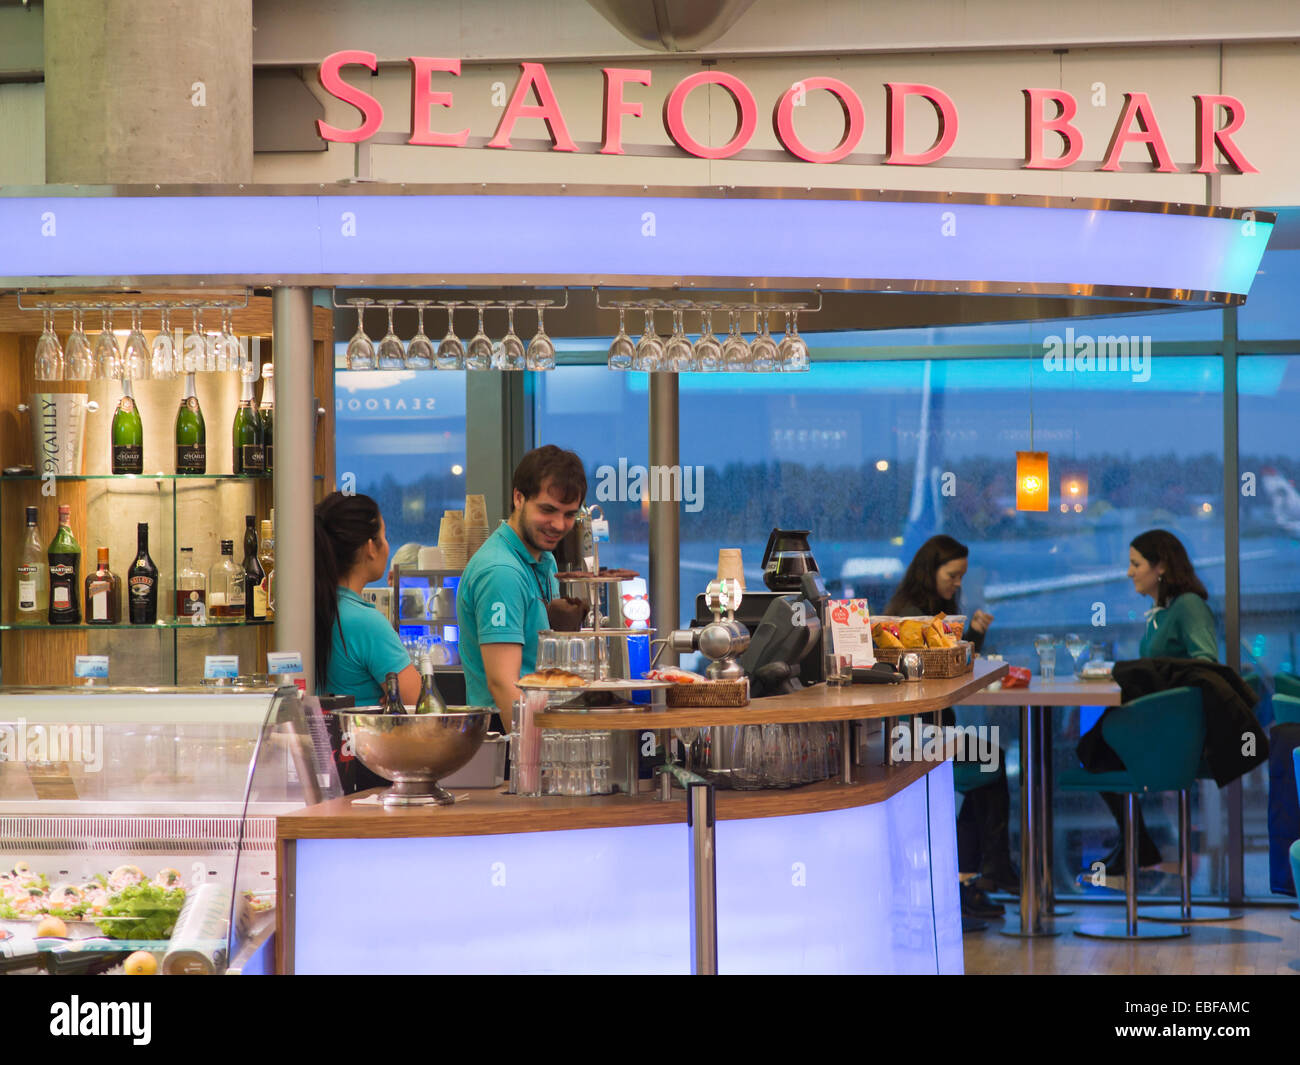 Oslo Airport, Gardermoen, departure hall has seafood bar for both national and international travel - Stock Image